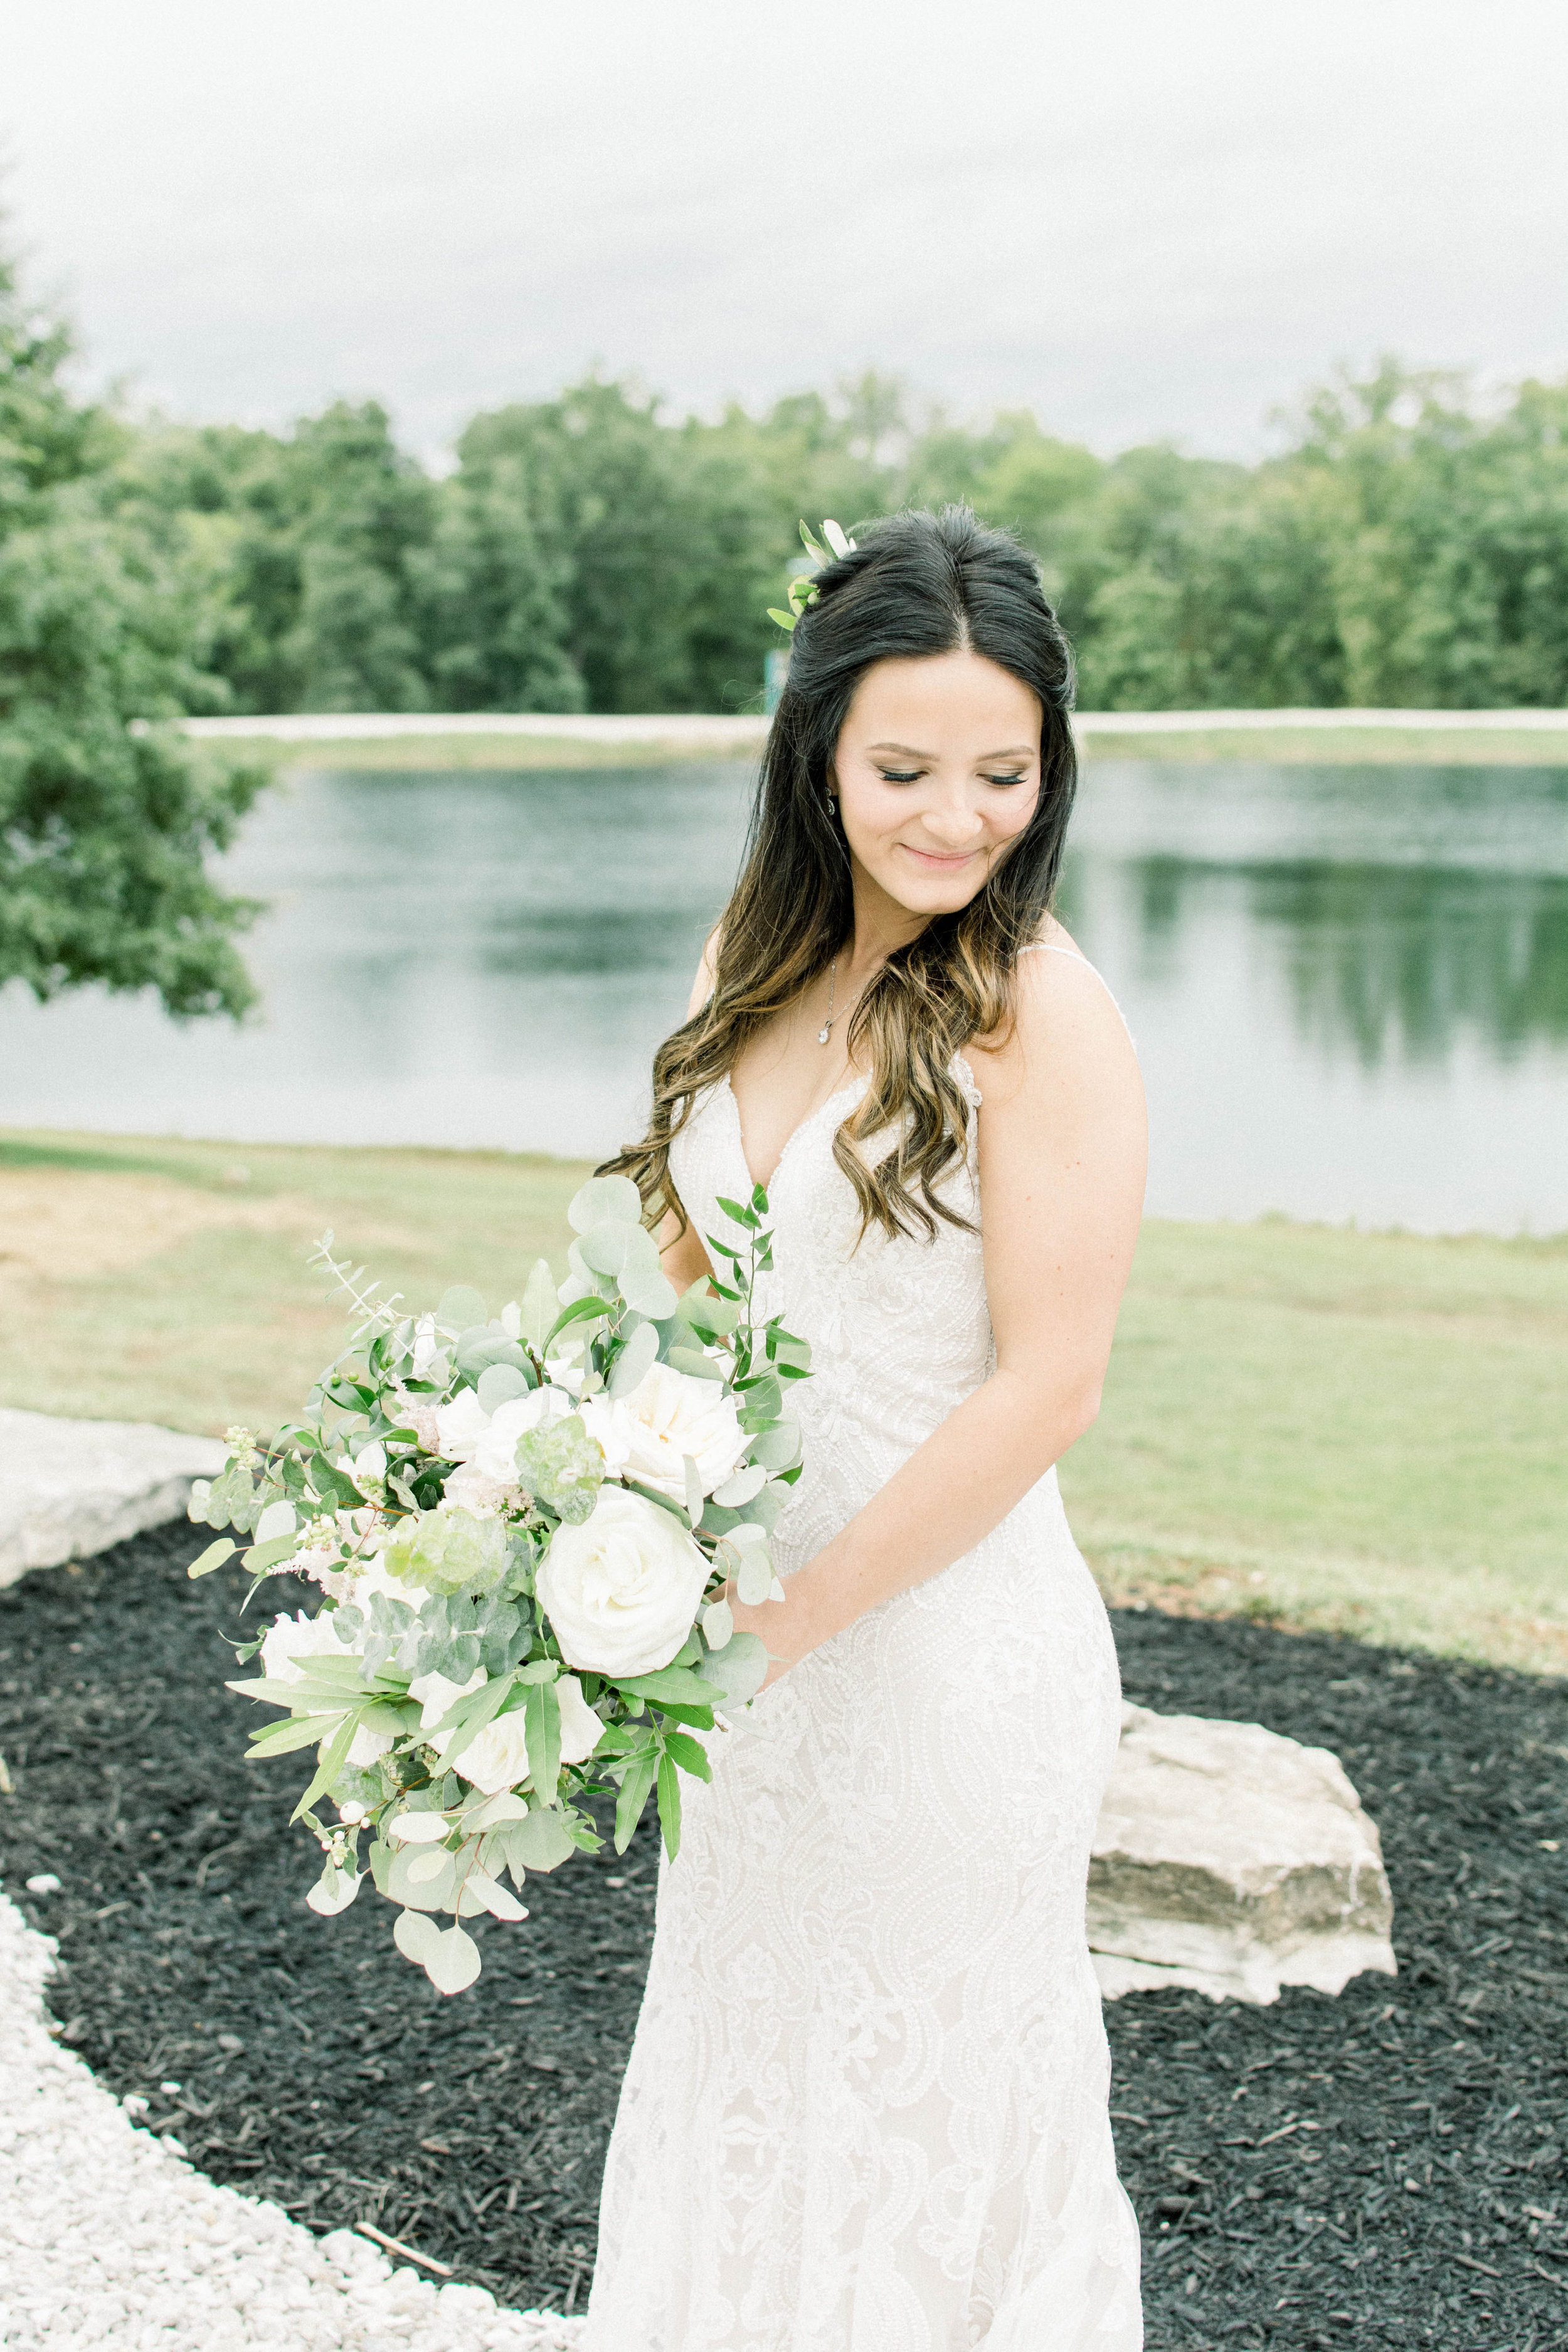 Lakefront Ceremonies - After your guests drive down our mile long private entrance overspread with wild flowers, the woods open up to a stunning 3 acre lake. Giant stone steps lead down from the barn, which create a perfect entrance before you say